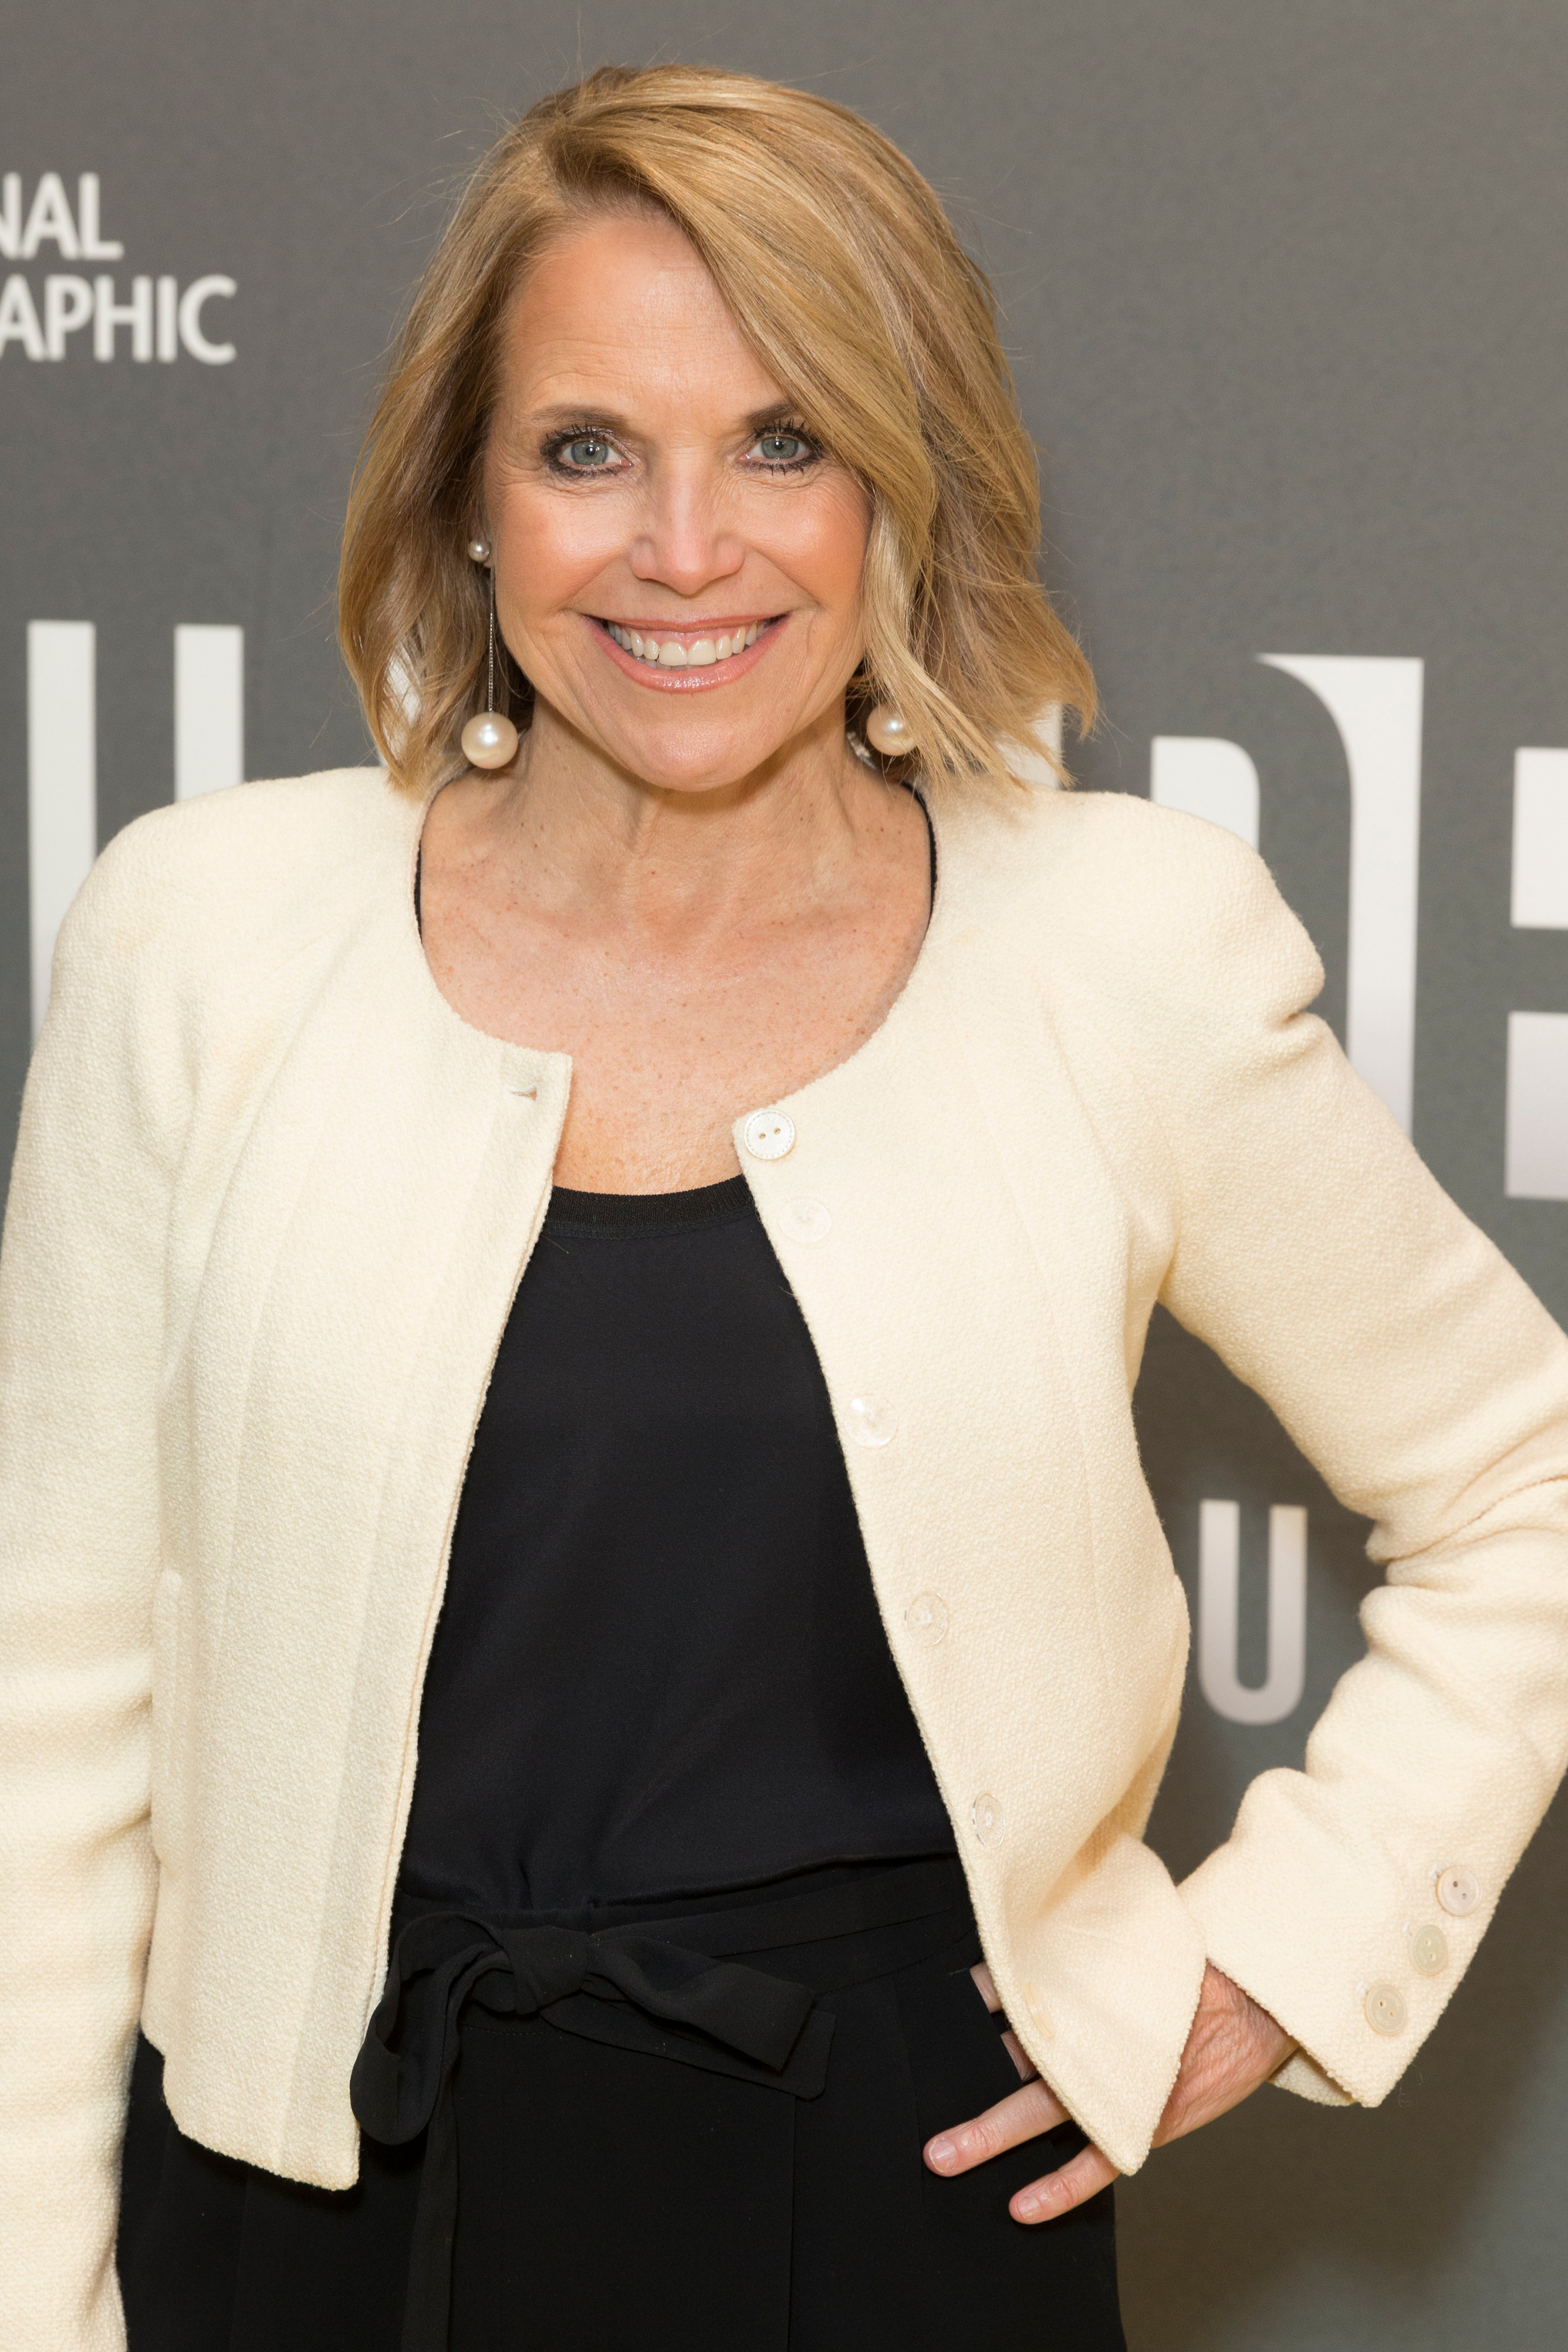 Katie Couric attends National Geographic presents America Inside Out with Katie Couric at Museum of Modern Art | Photo: Shutterstock